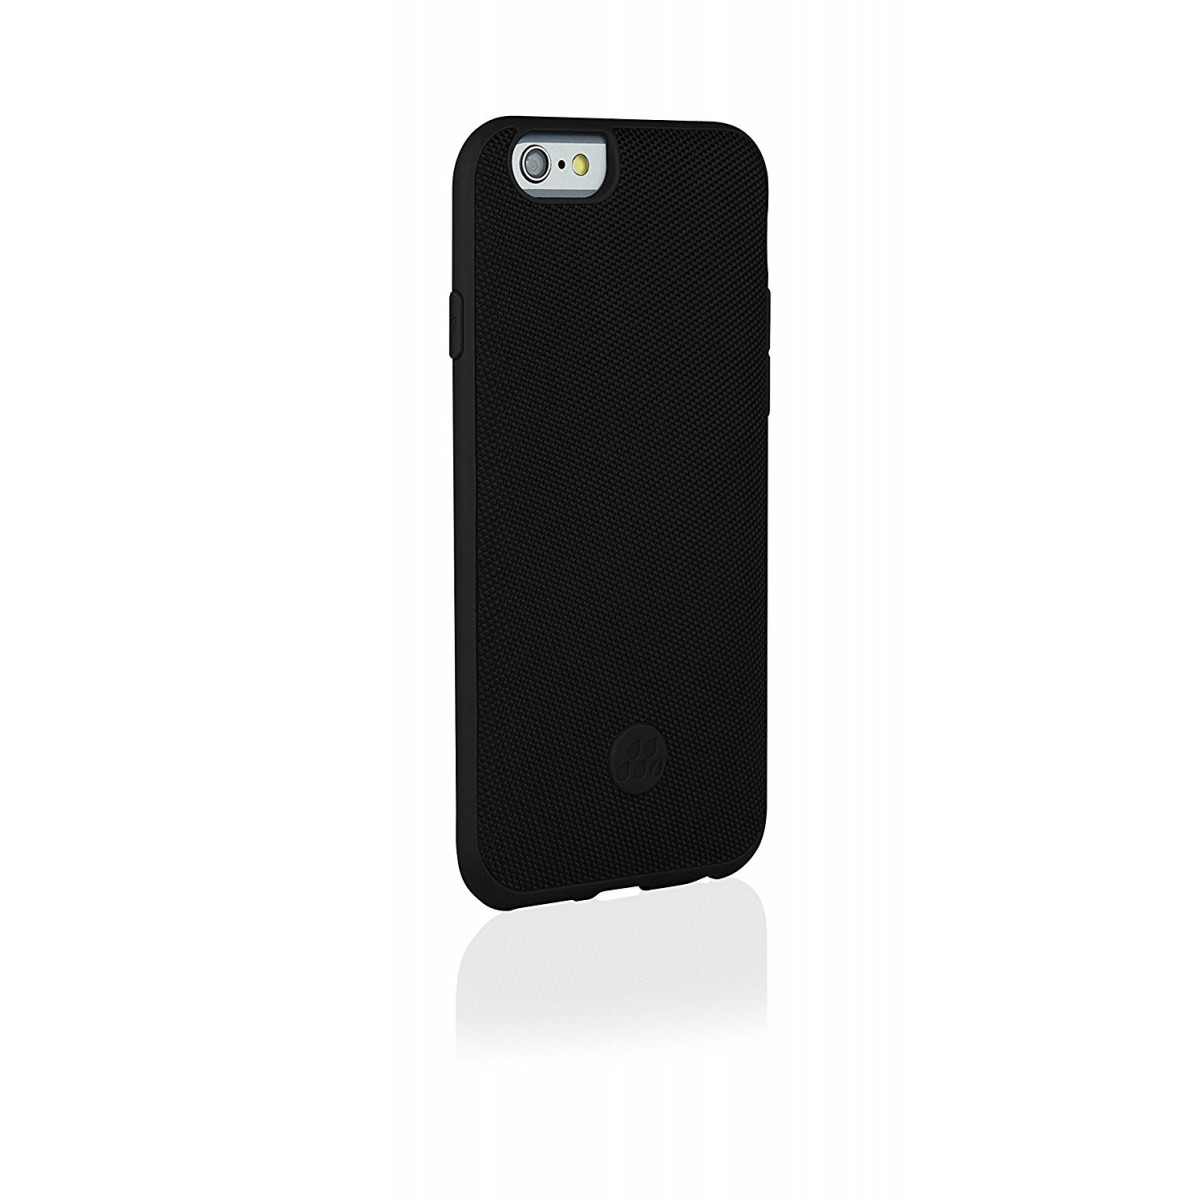 best service 2d9a5 273a4 Evutec iPhone 6 Ballistic ST Series Case, Evutec Military Standard  Protective Lightweight Shell Protective for Apple iPhone 6 / 6S 4.7 Inch  (Black)